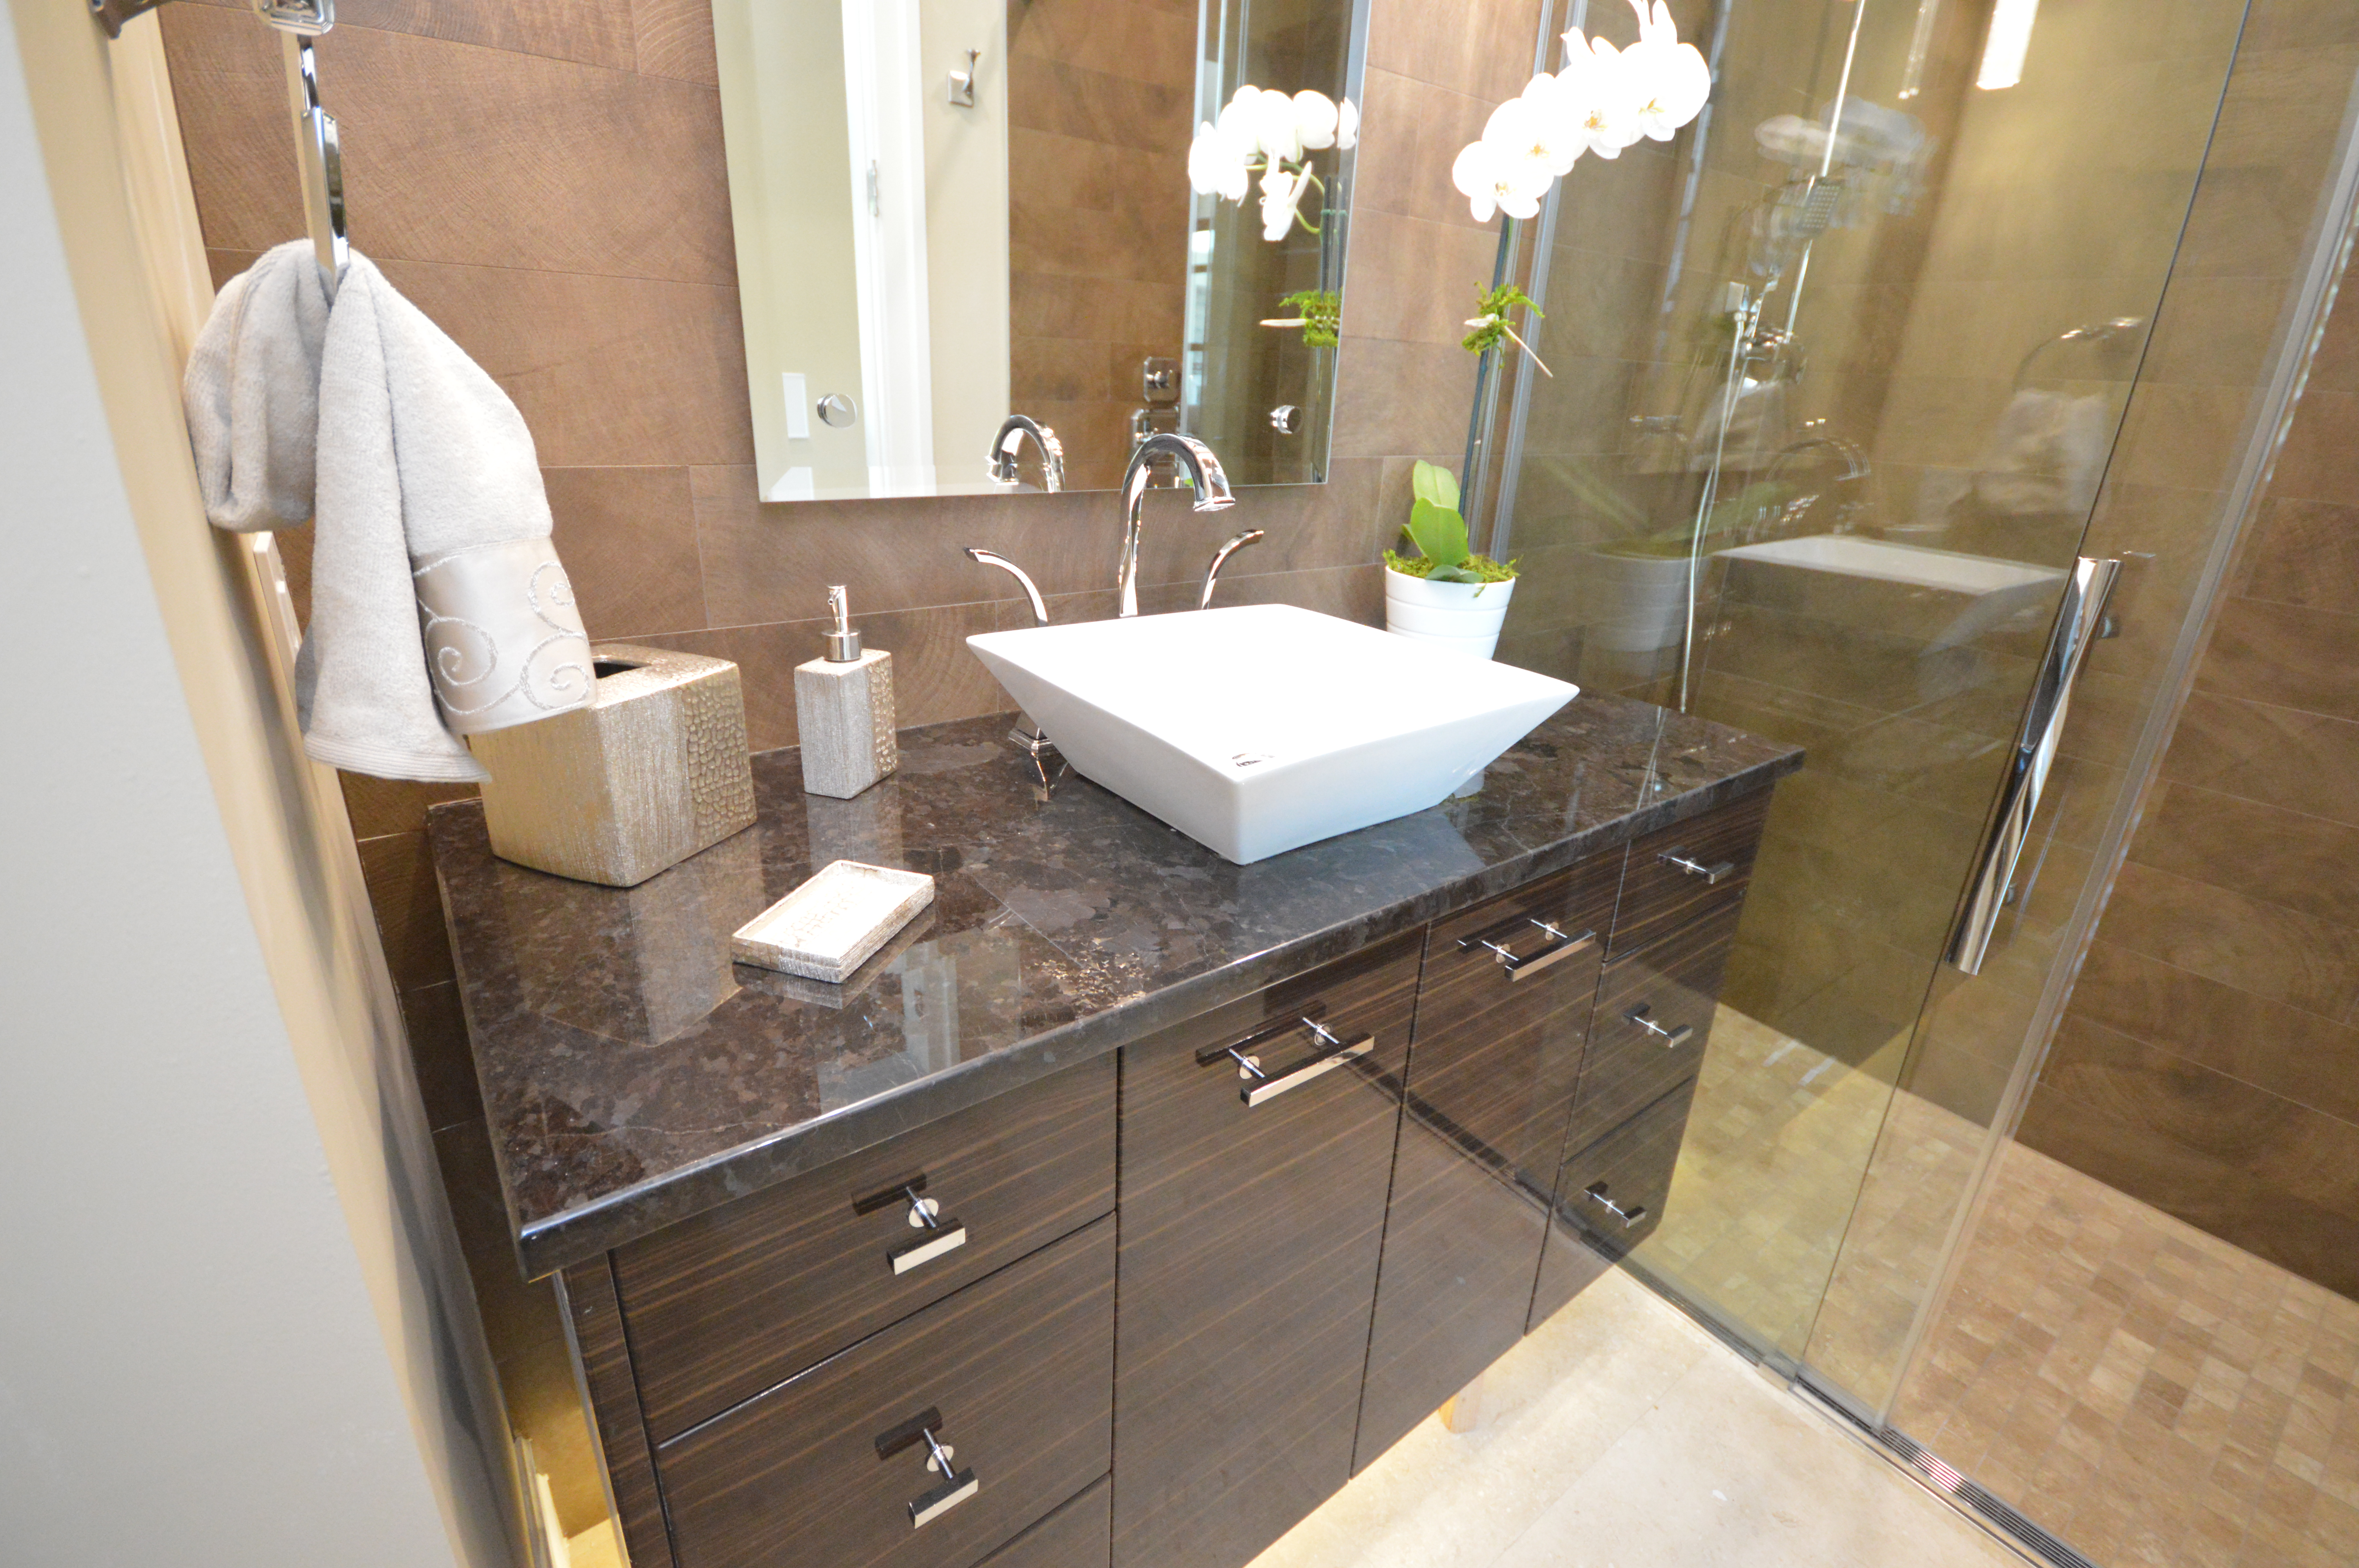 selecting a sink for your countertop | adp surfaces orlando